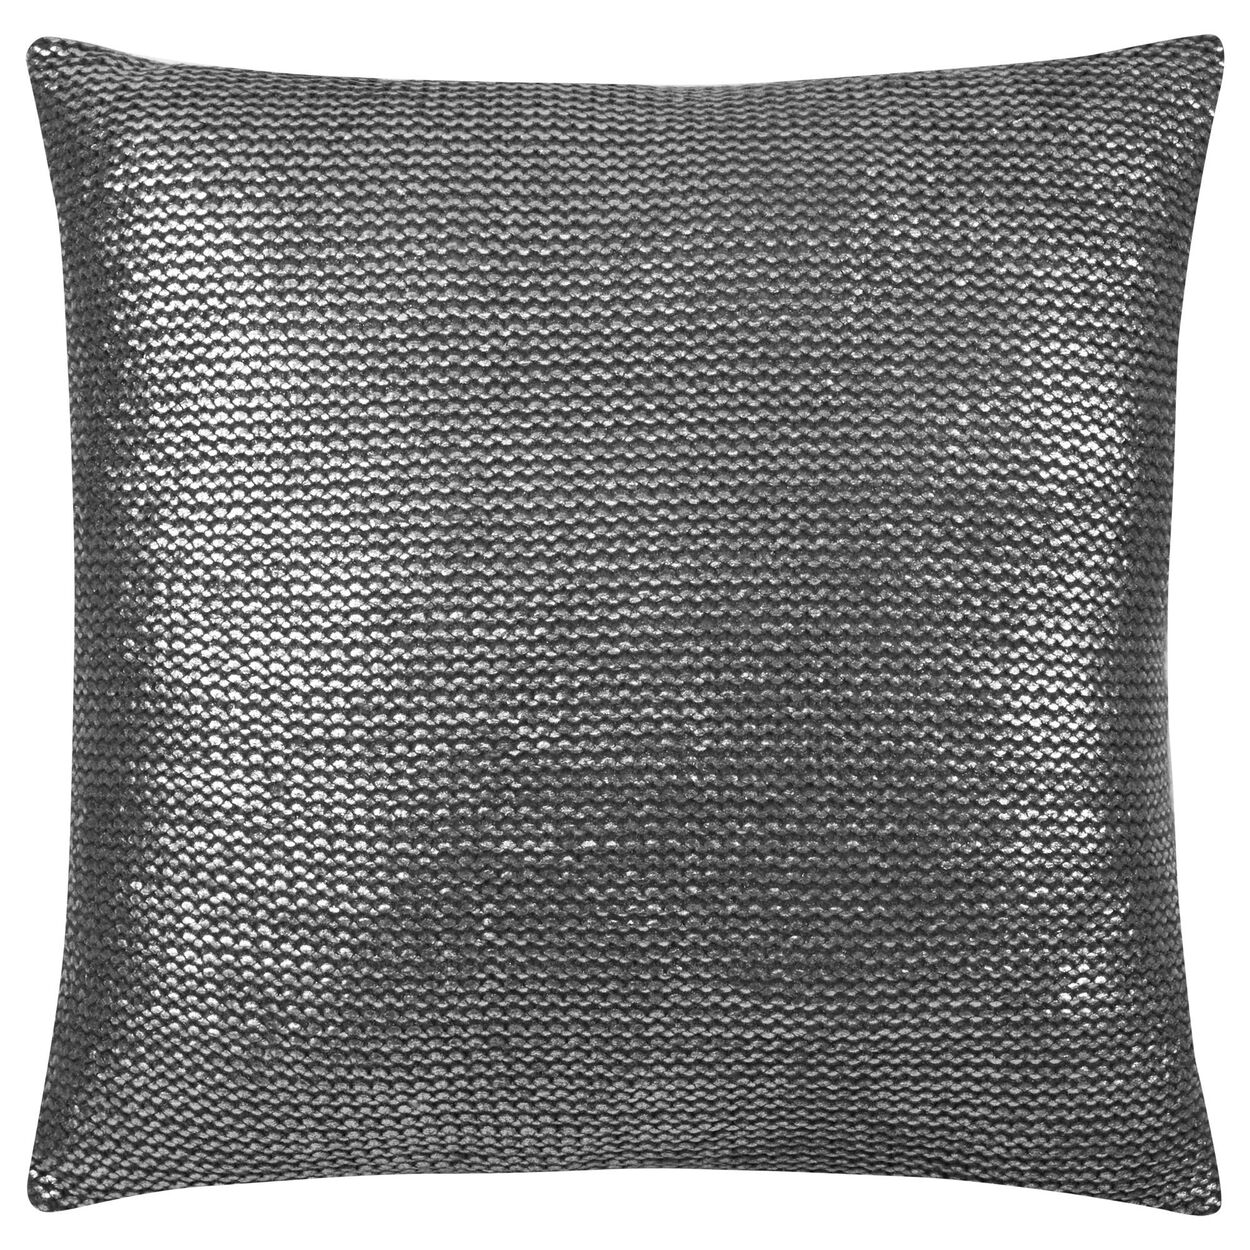 "Elvie Metallic Decorative Pillow 20"" X 120"""